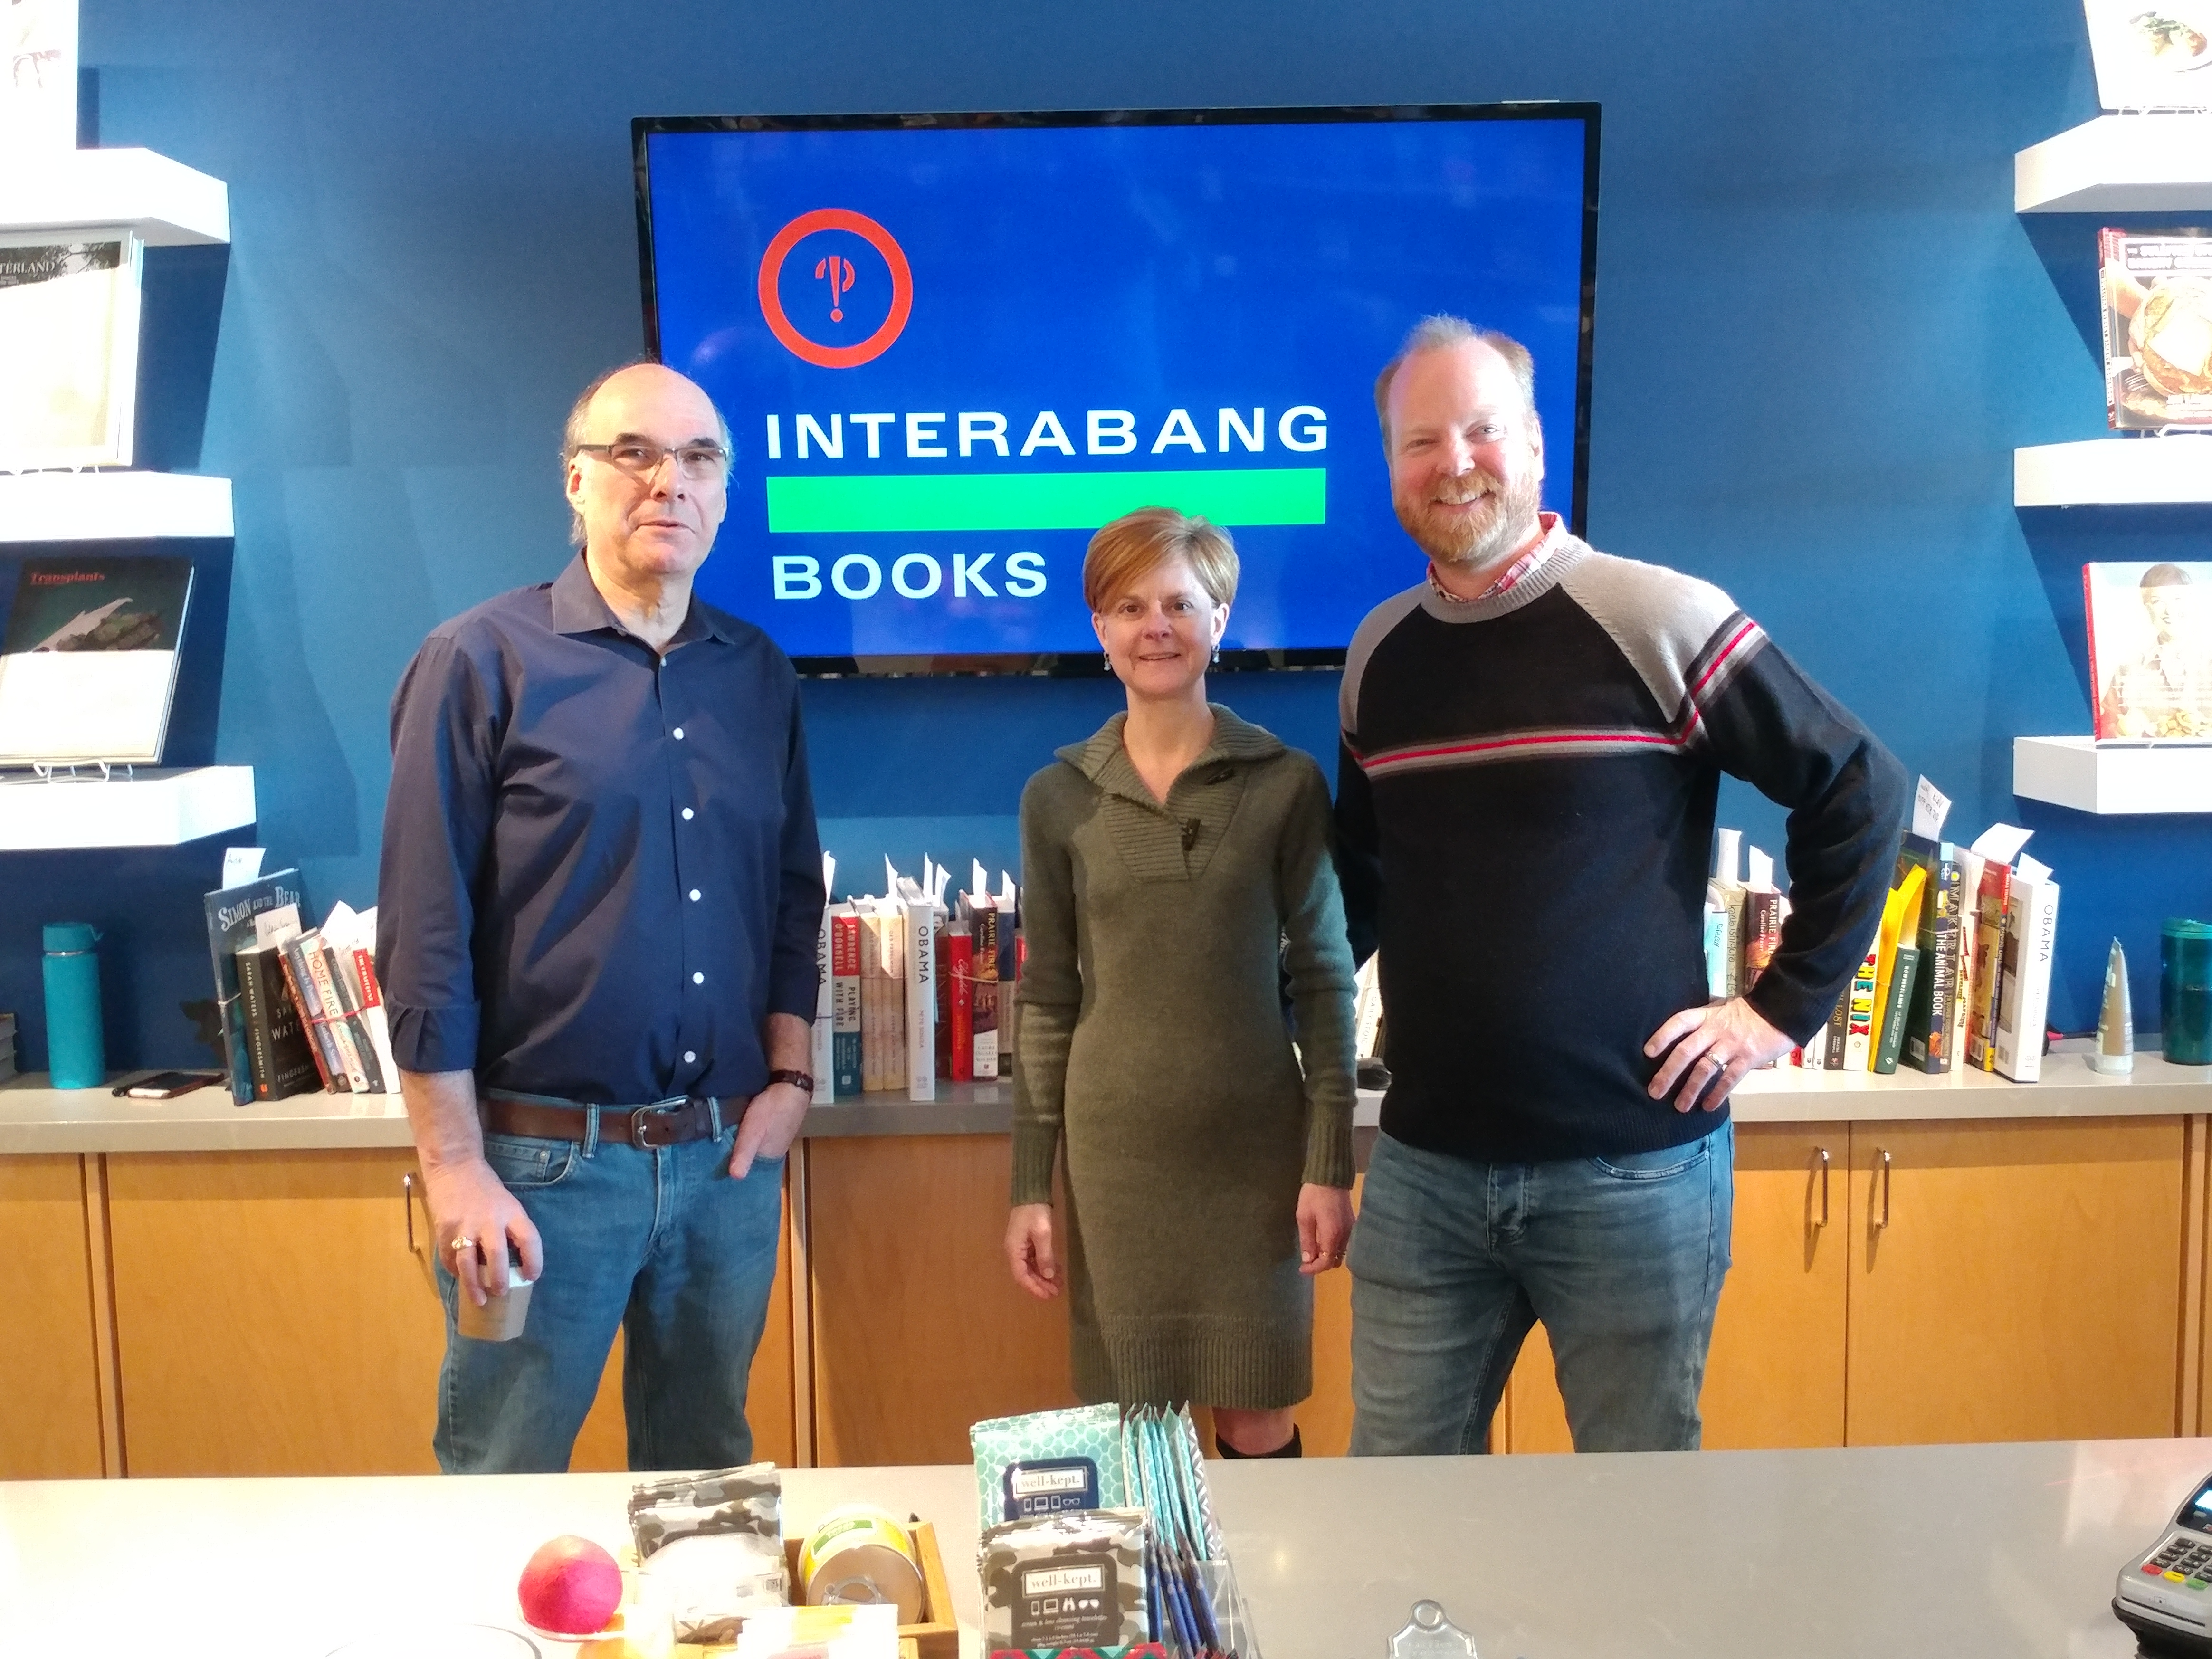 This holiday, ABA CEO Oren Teicher visited Interabang Books co-owners Lori Feathers and Jeremy Ellis.